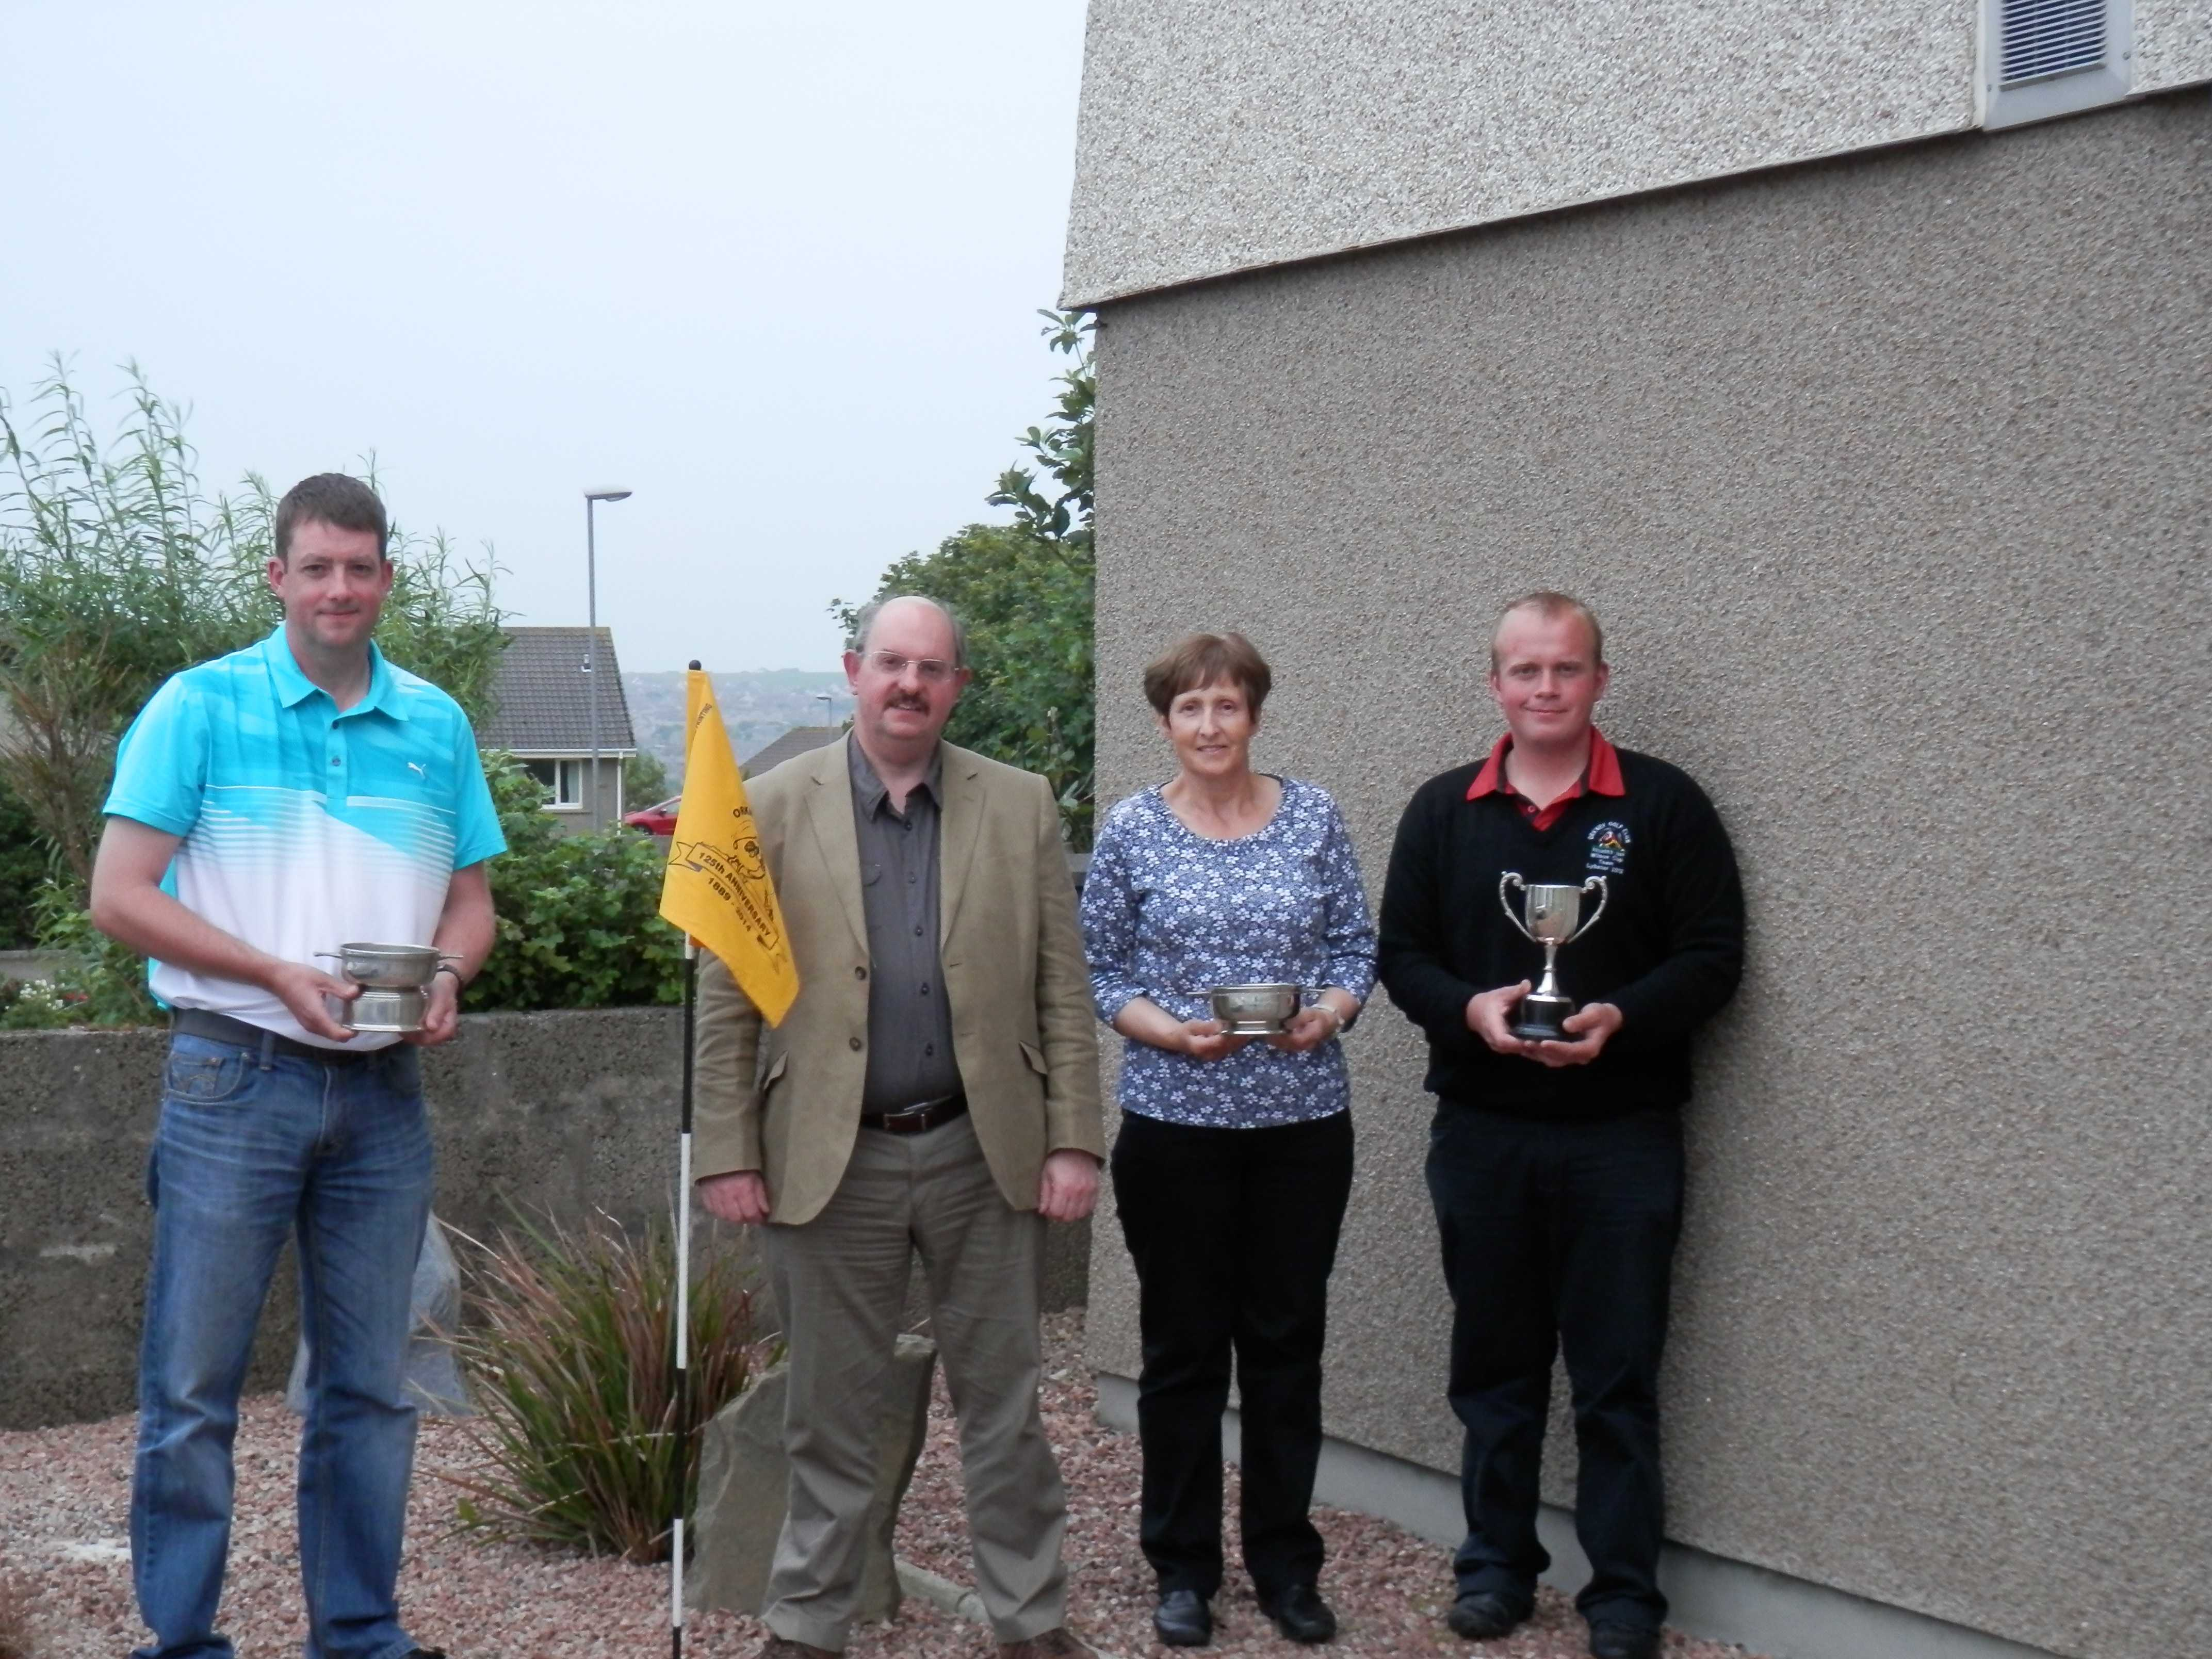 2014 Lows Orkney Open winners -  Stuart Anderson (Whalsay), Allie Bruce (Lows), Maggie Learmonth and Steven Rendall